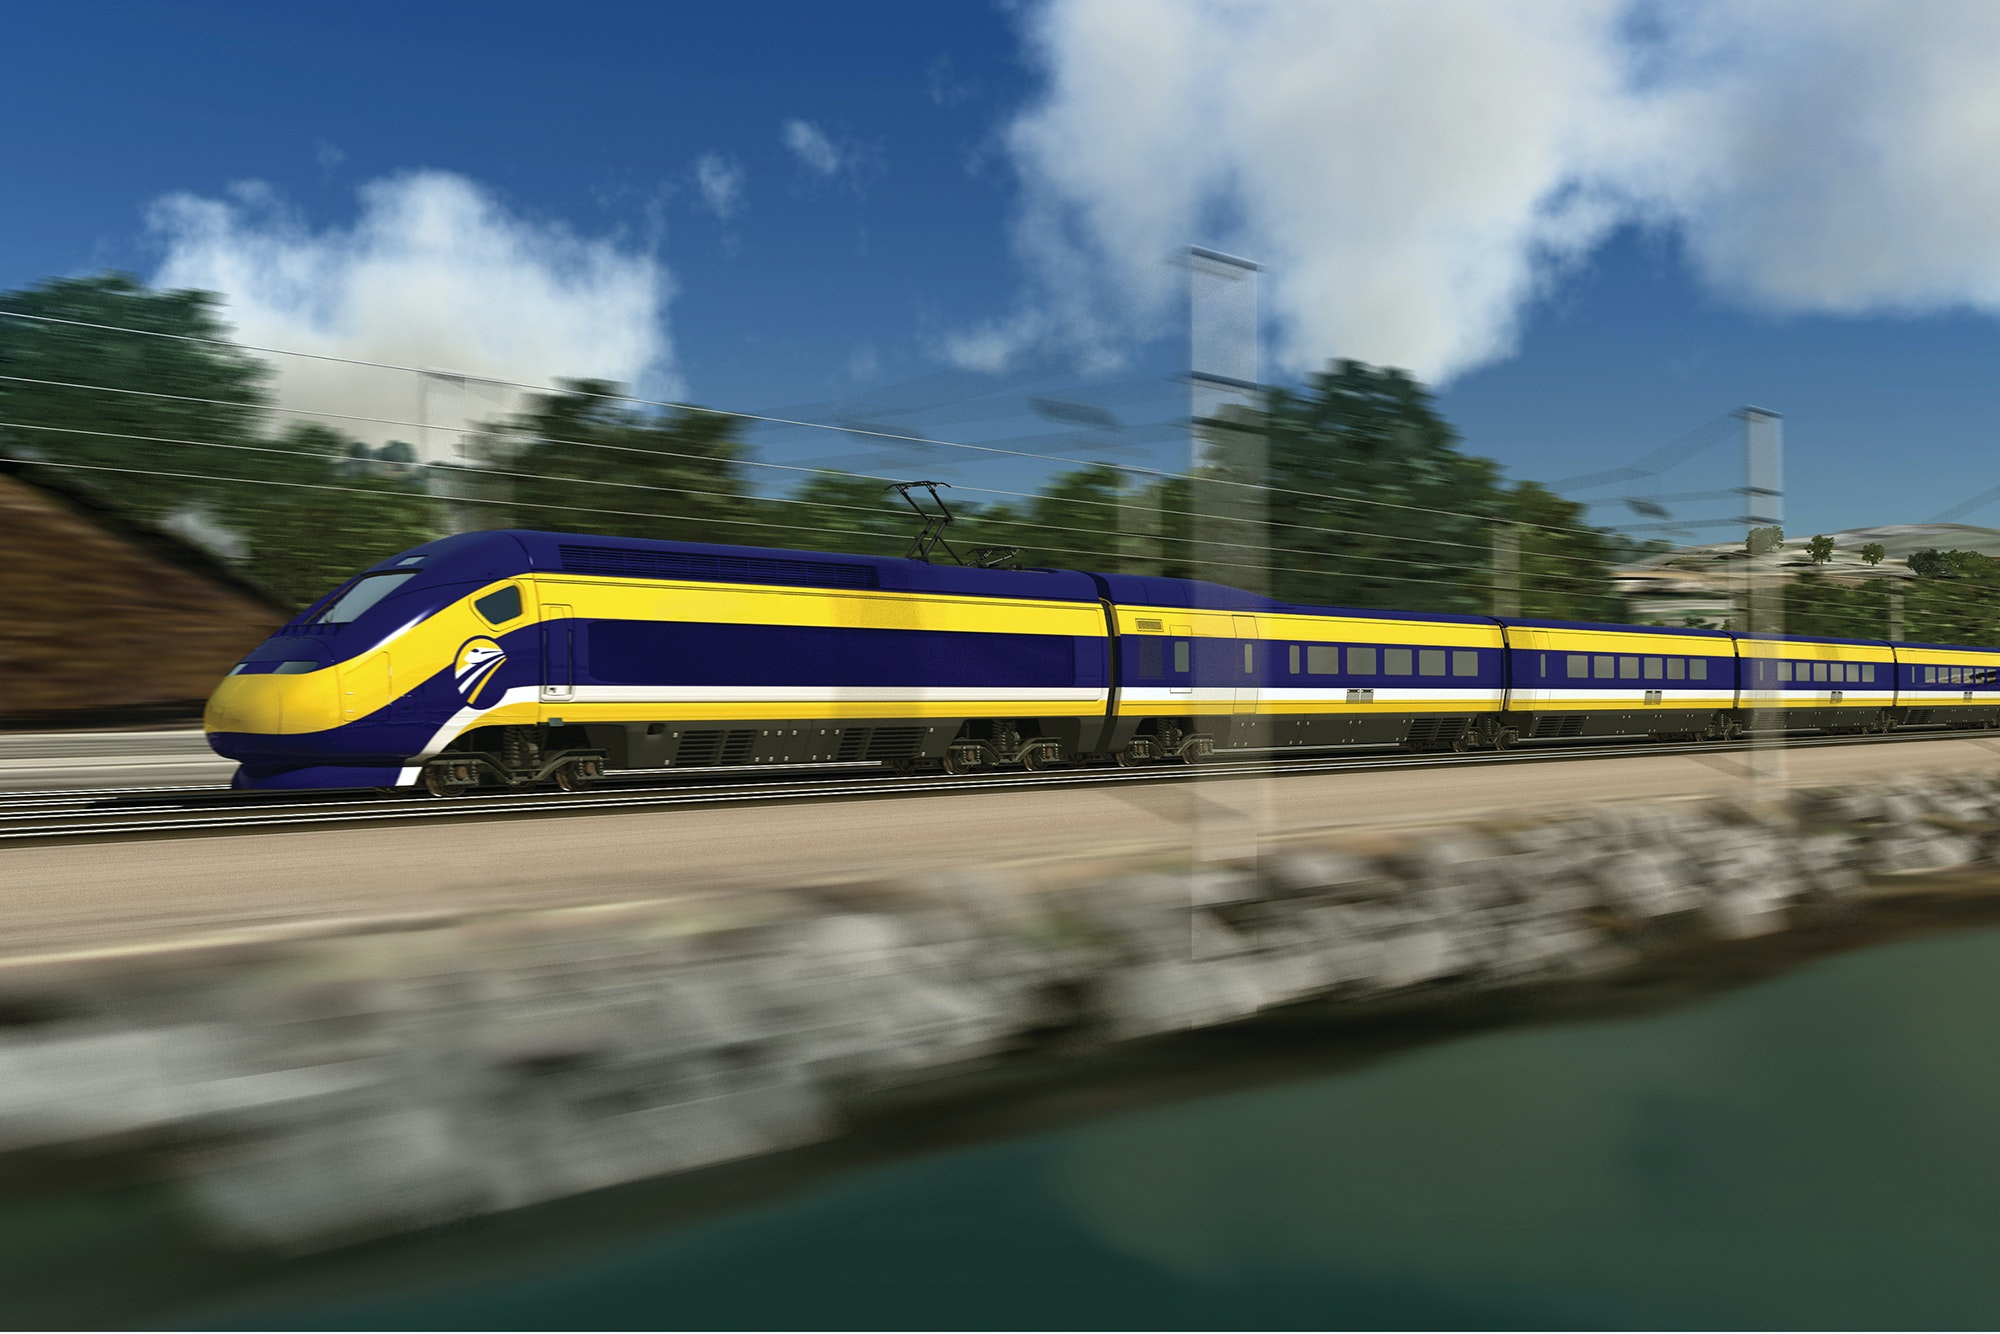 The California high-speed rail route between San Francisco and Los Angeles is slated to open in 2033.